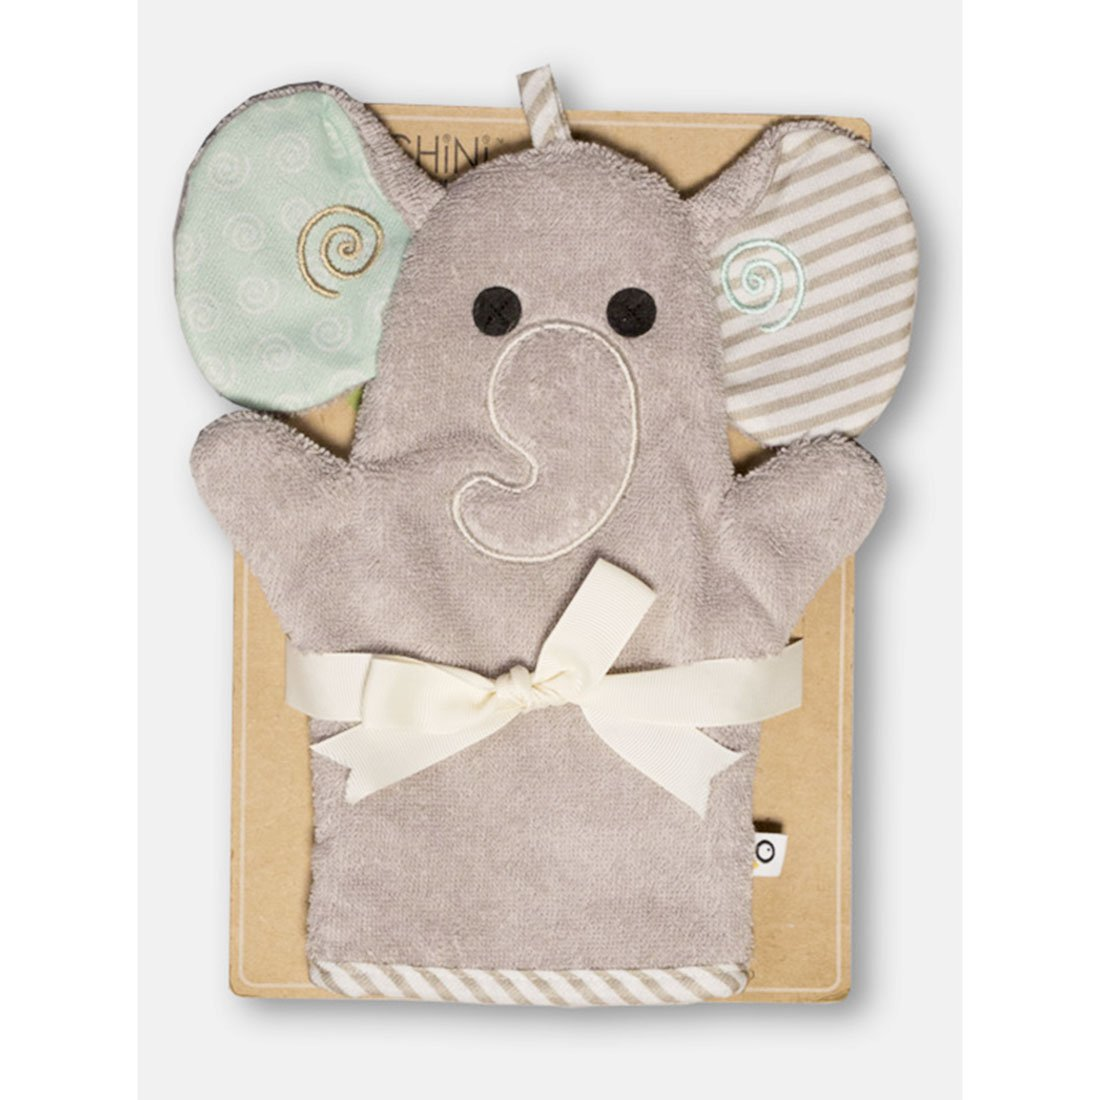 ZOOCCHINI Baby Snow Terry Bath Mitt - Elle the Elephant